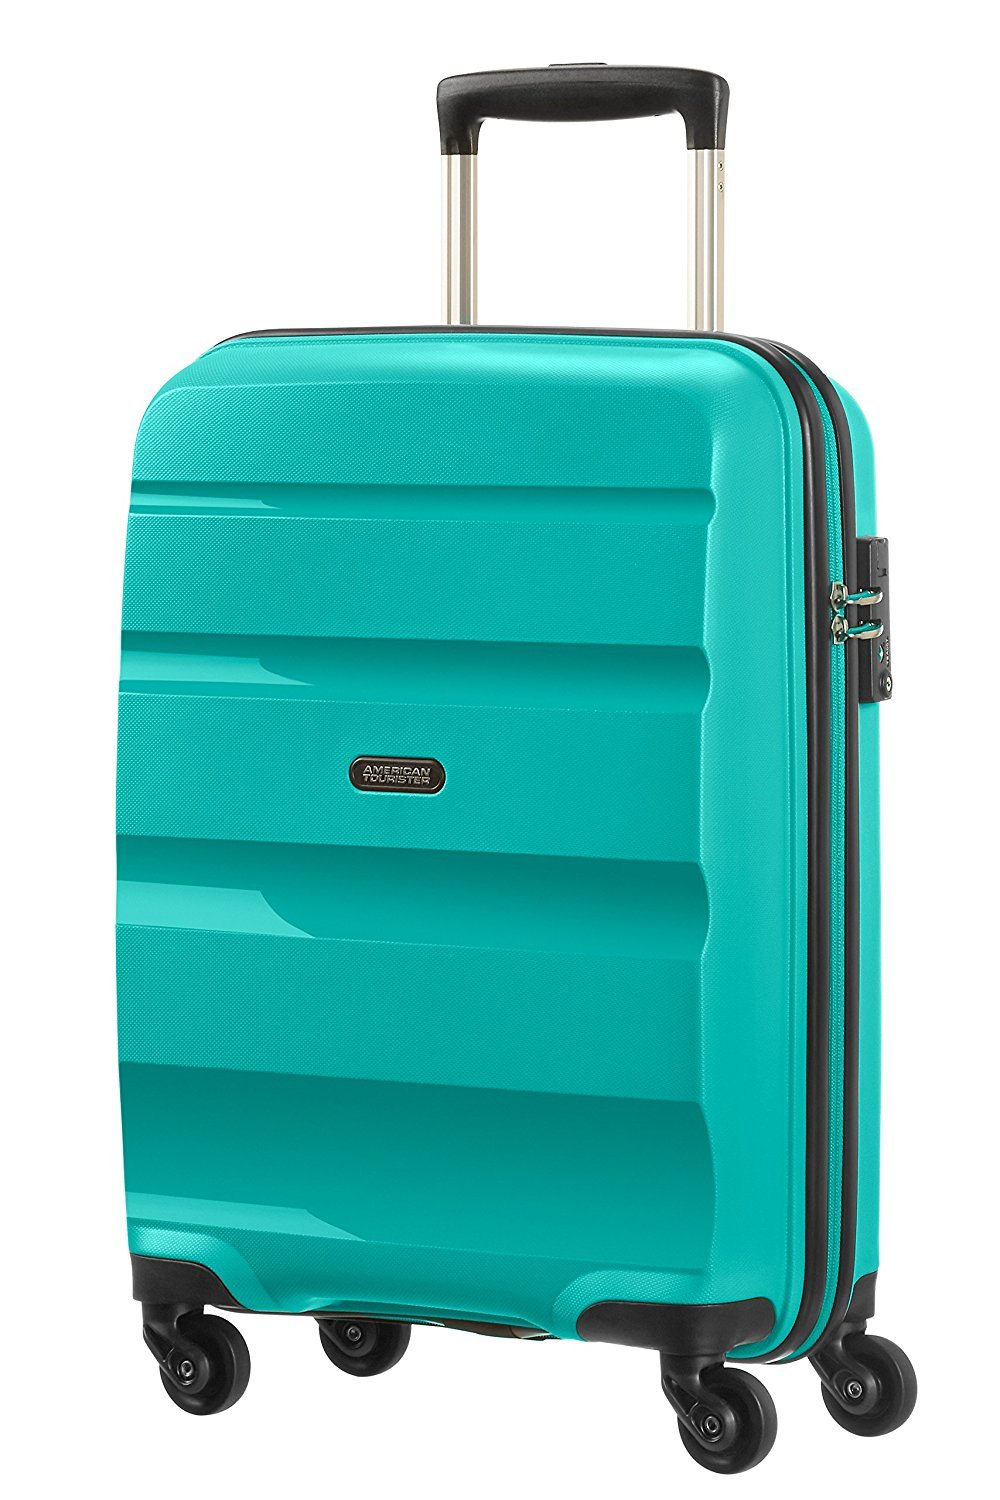 American Tourister Bon Air 4 Wheel Suitcase Review